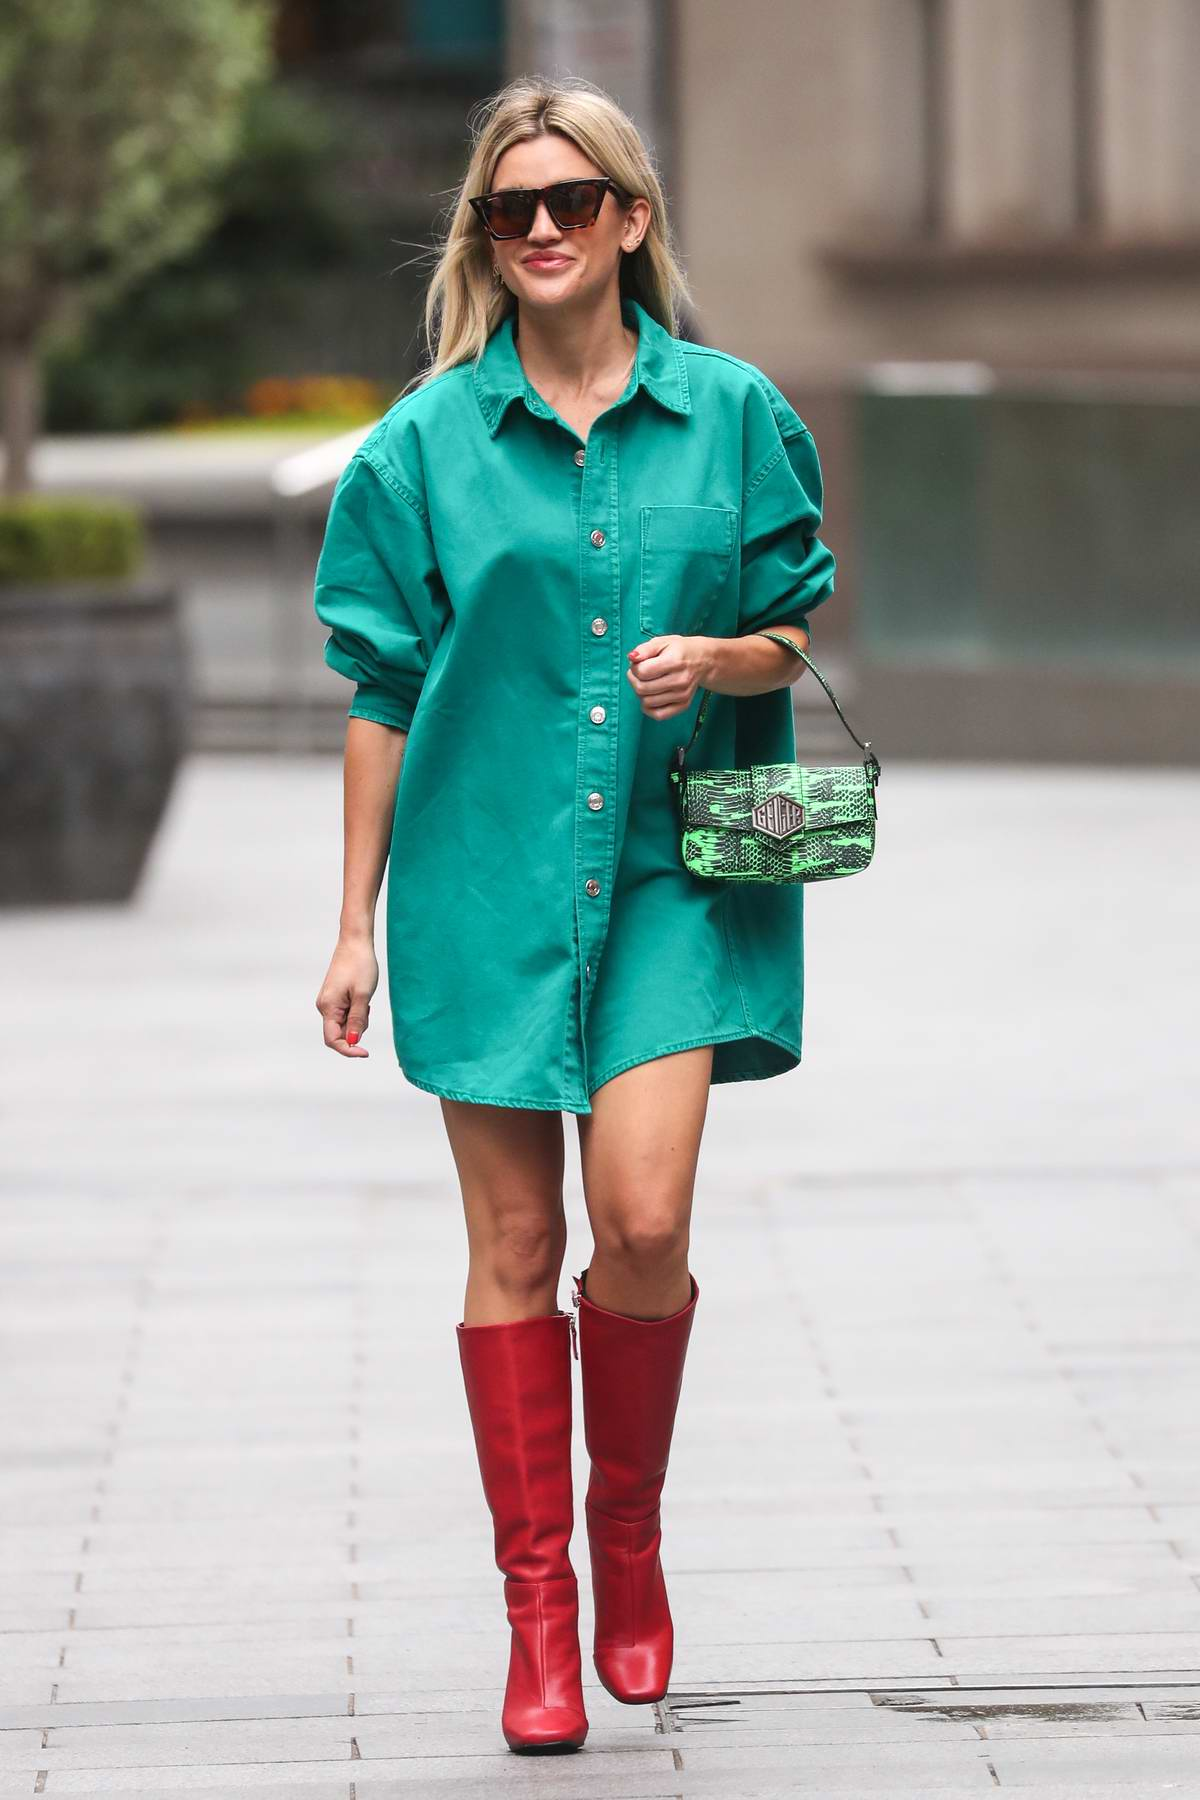 Ashley Roberts looks stylish in a teal-green shirt dress and red boots as she leaves Heart radio in London, UK